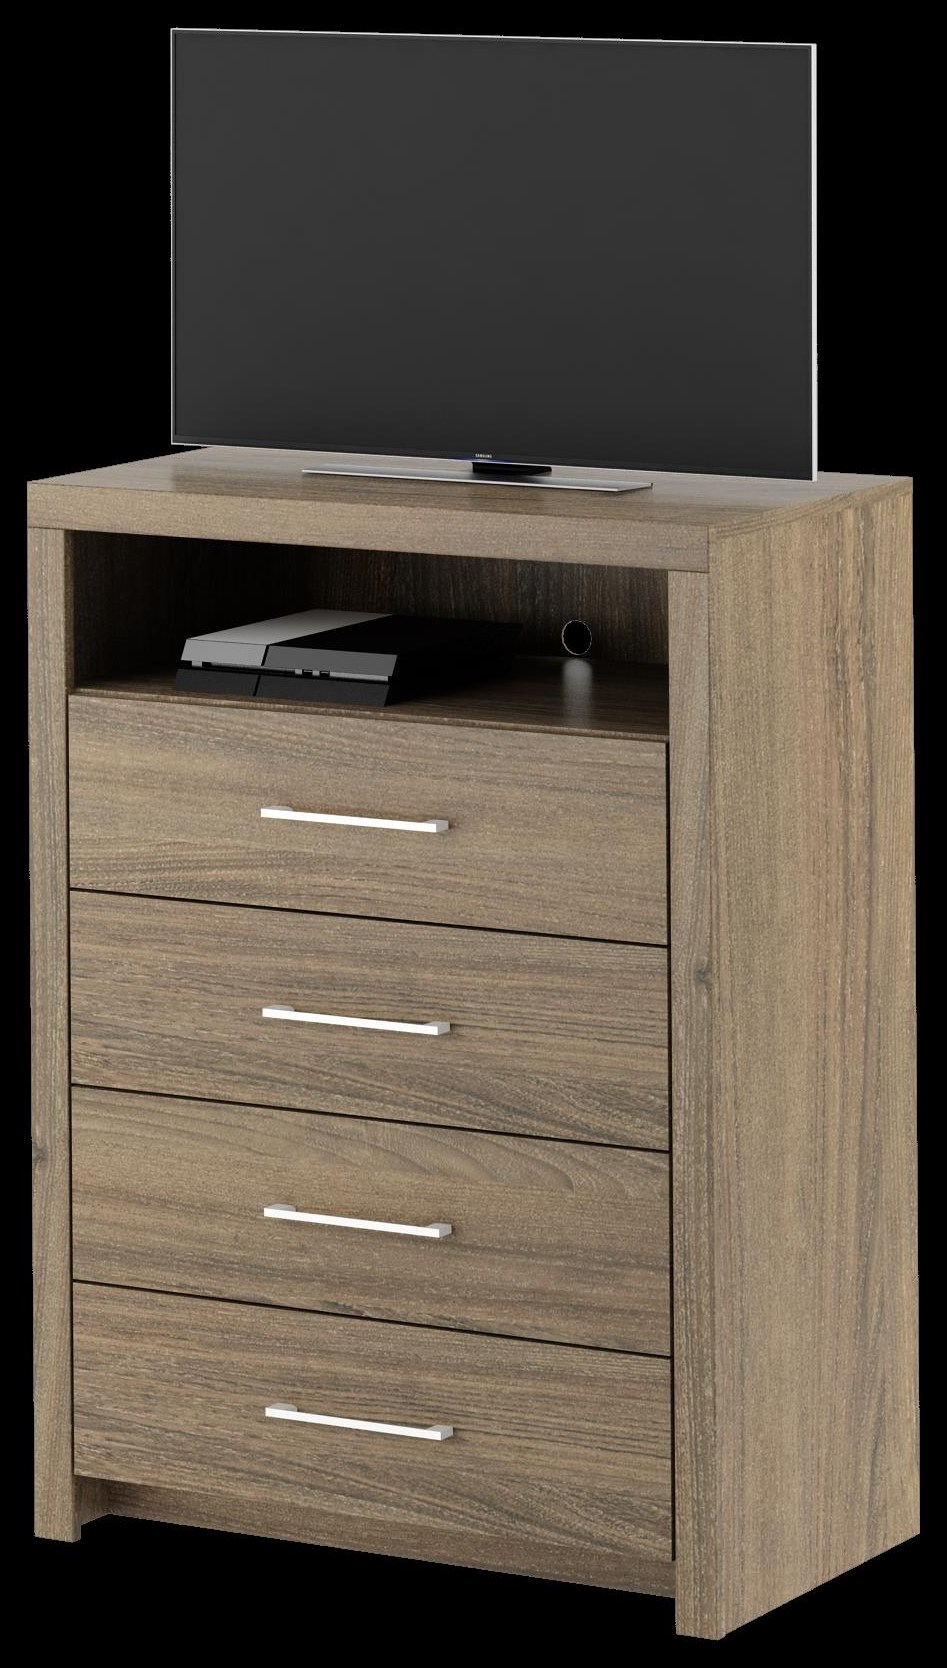 559 Chest, Mocha by Defehr at Stoney Creek Furniture